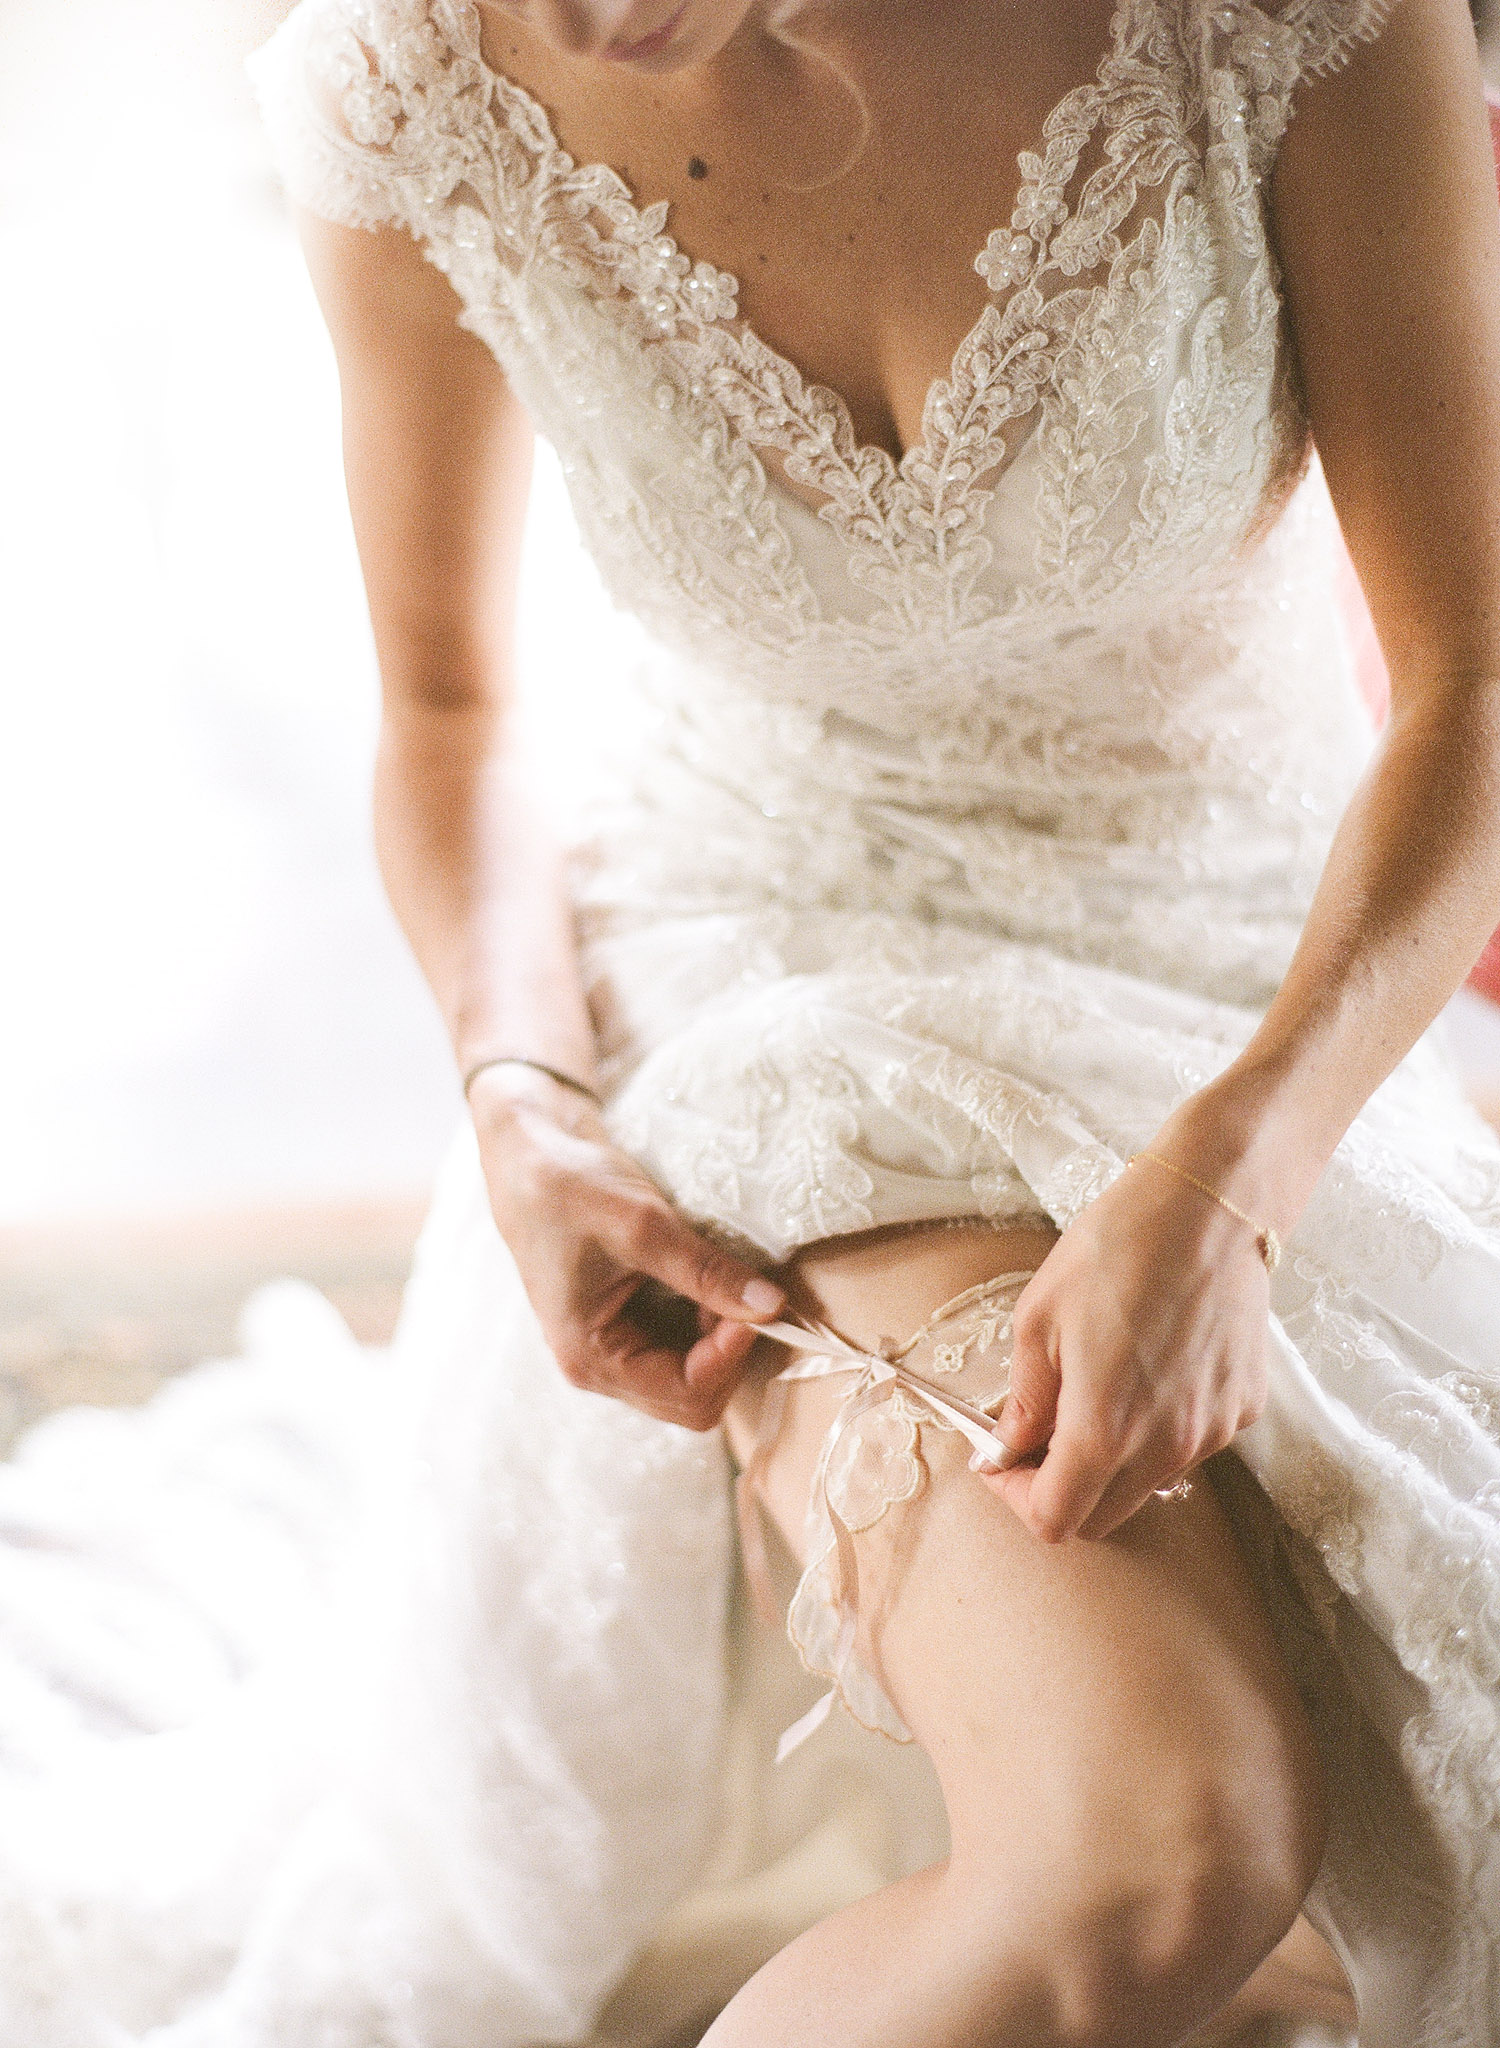 Bride ties on vintage lace garter on her wedding day while destination wedding photographer Lexia Frank photographs this wedding on film at the Northwind Perennial Gardens in Wisconsin